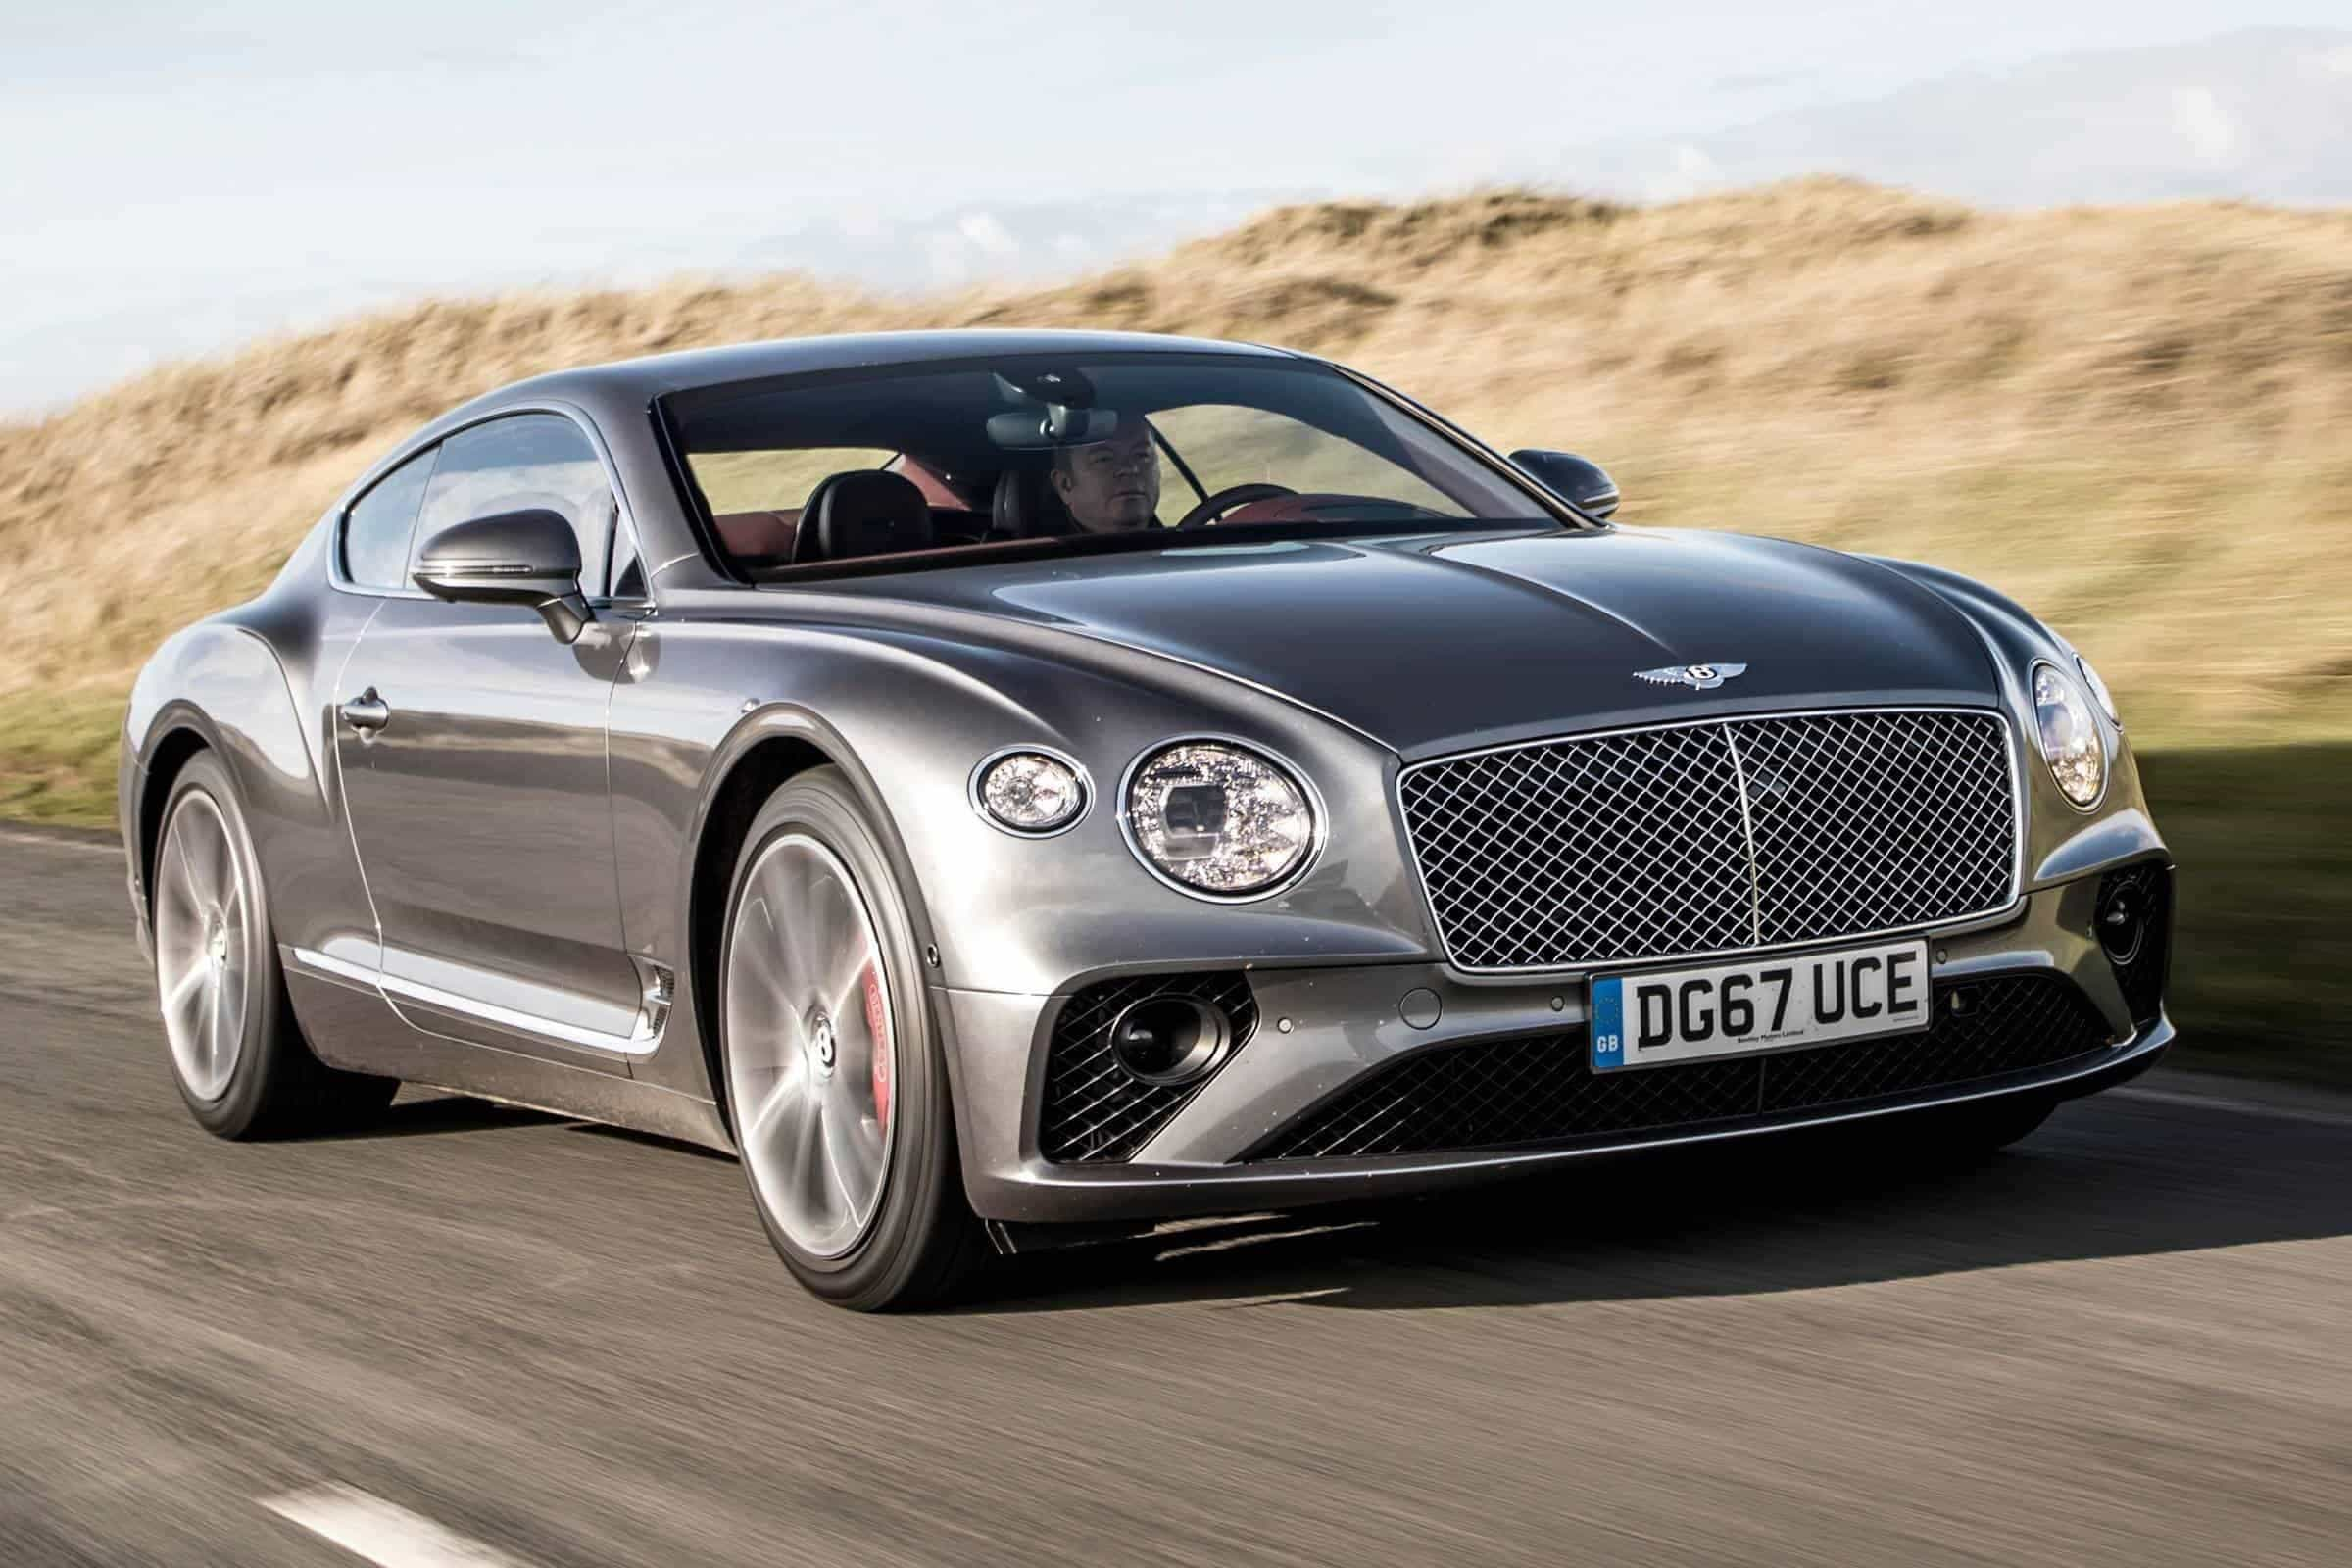 Bentley - the best in its class